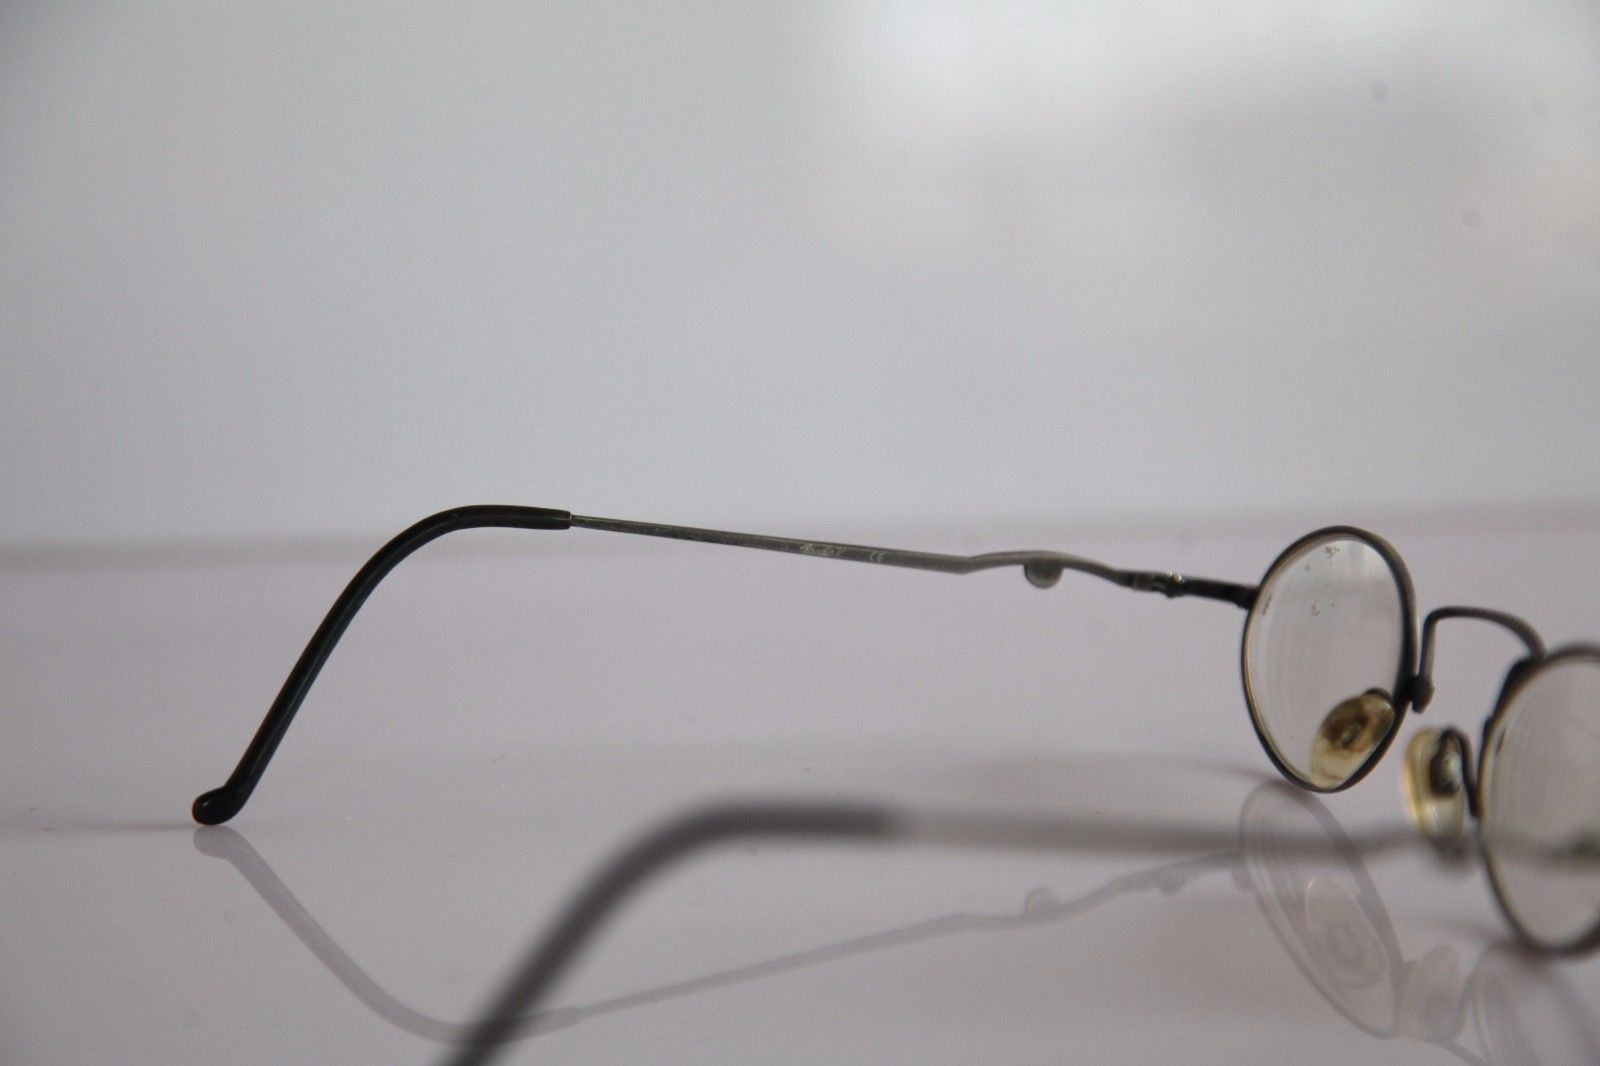 CLAUDIO P. Eyewear, Silver Frame, RX-Able Prescription lenses. Made in Italy image 6